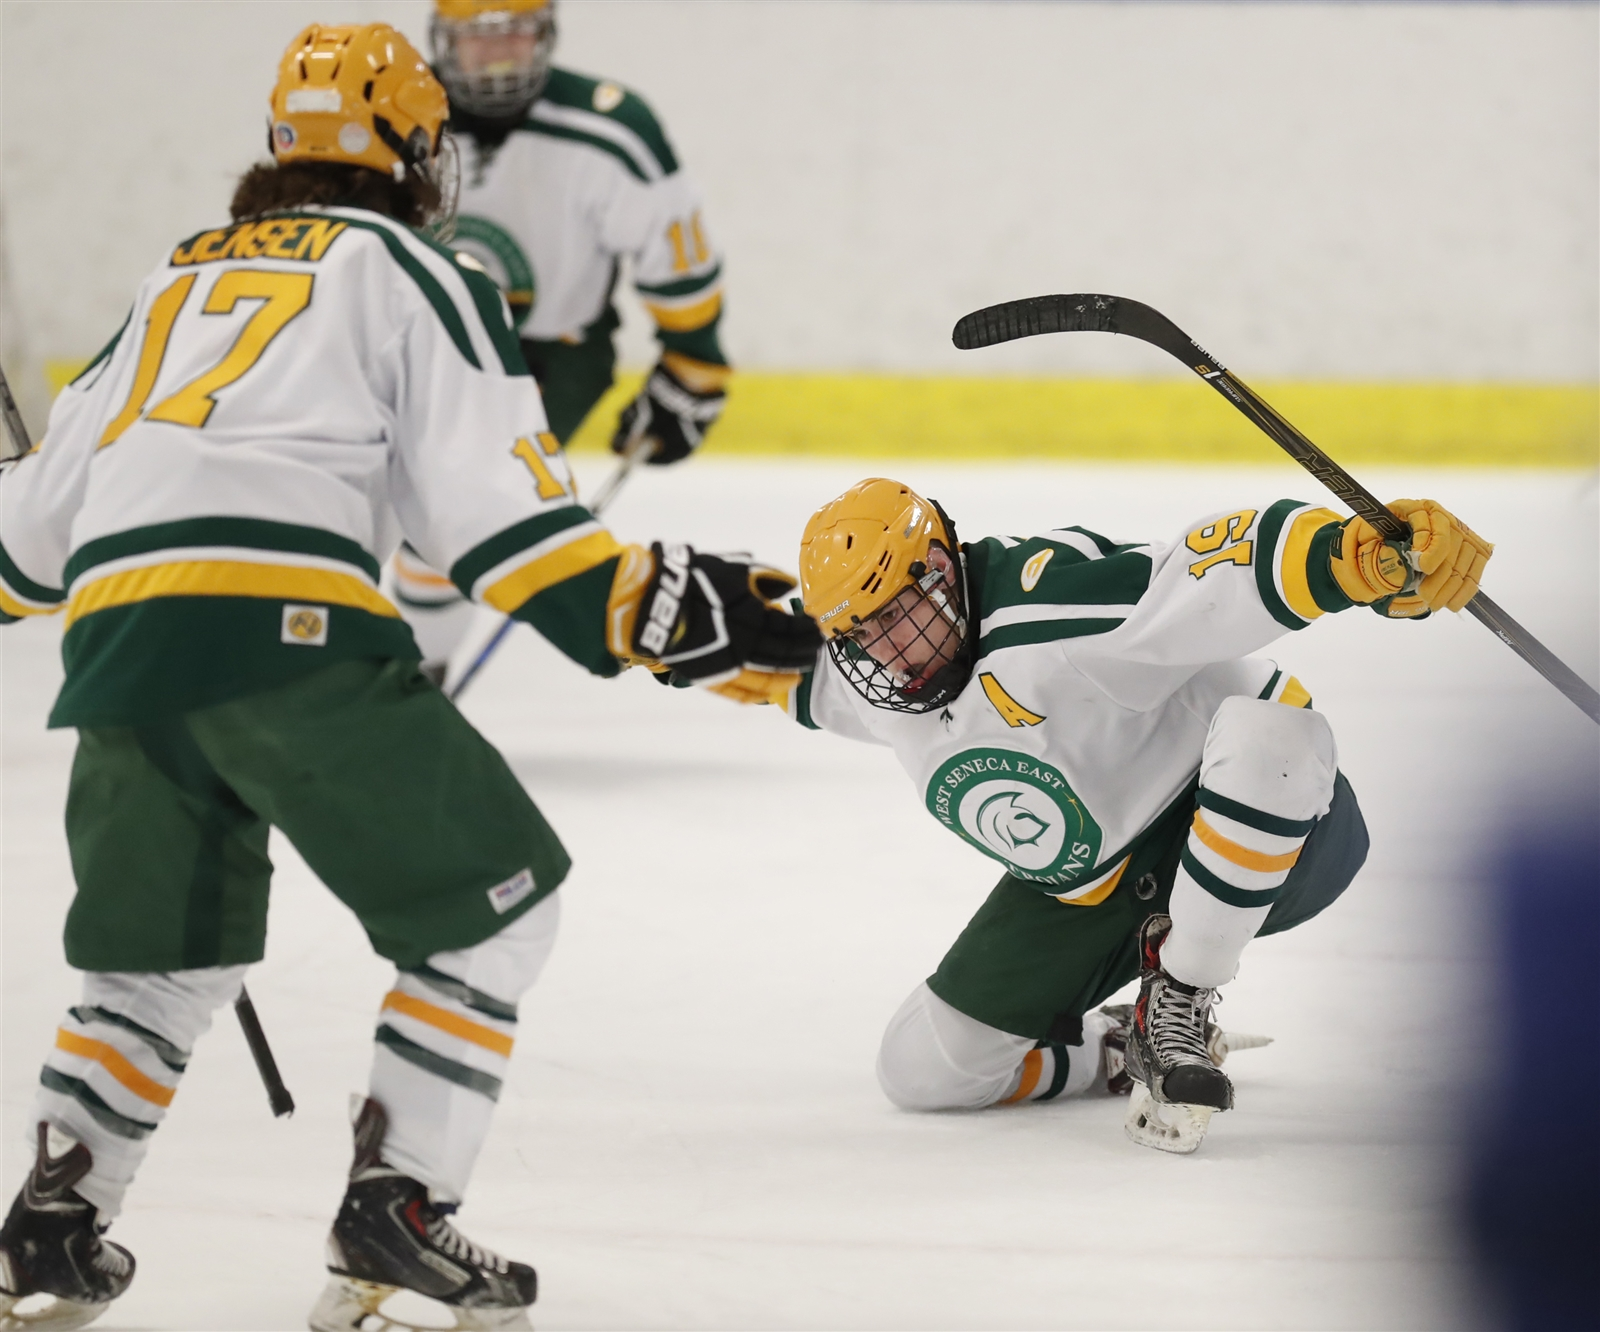 West Seneca East returns to the ice Wednesday in a Section VI Division II semifinal game as high school hockey's postseason hits the home stretch in Western New York. (Harry Scull Jr./Buffalo News)